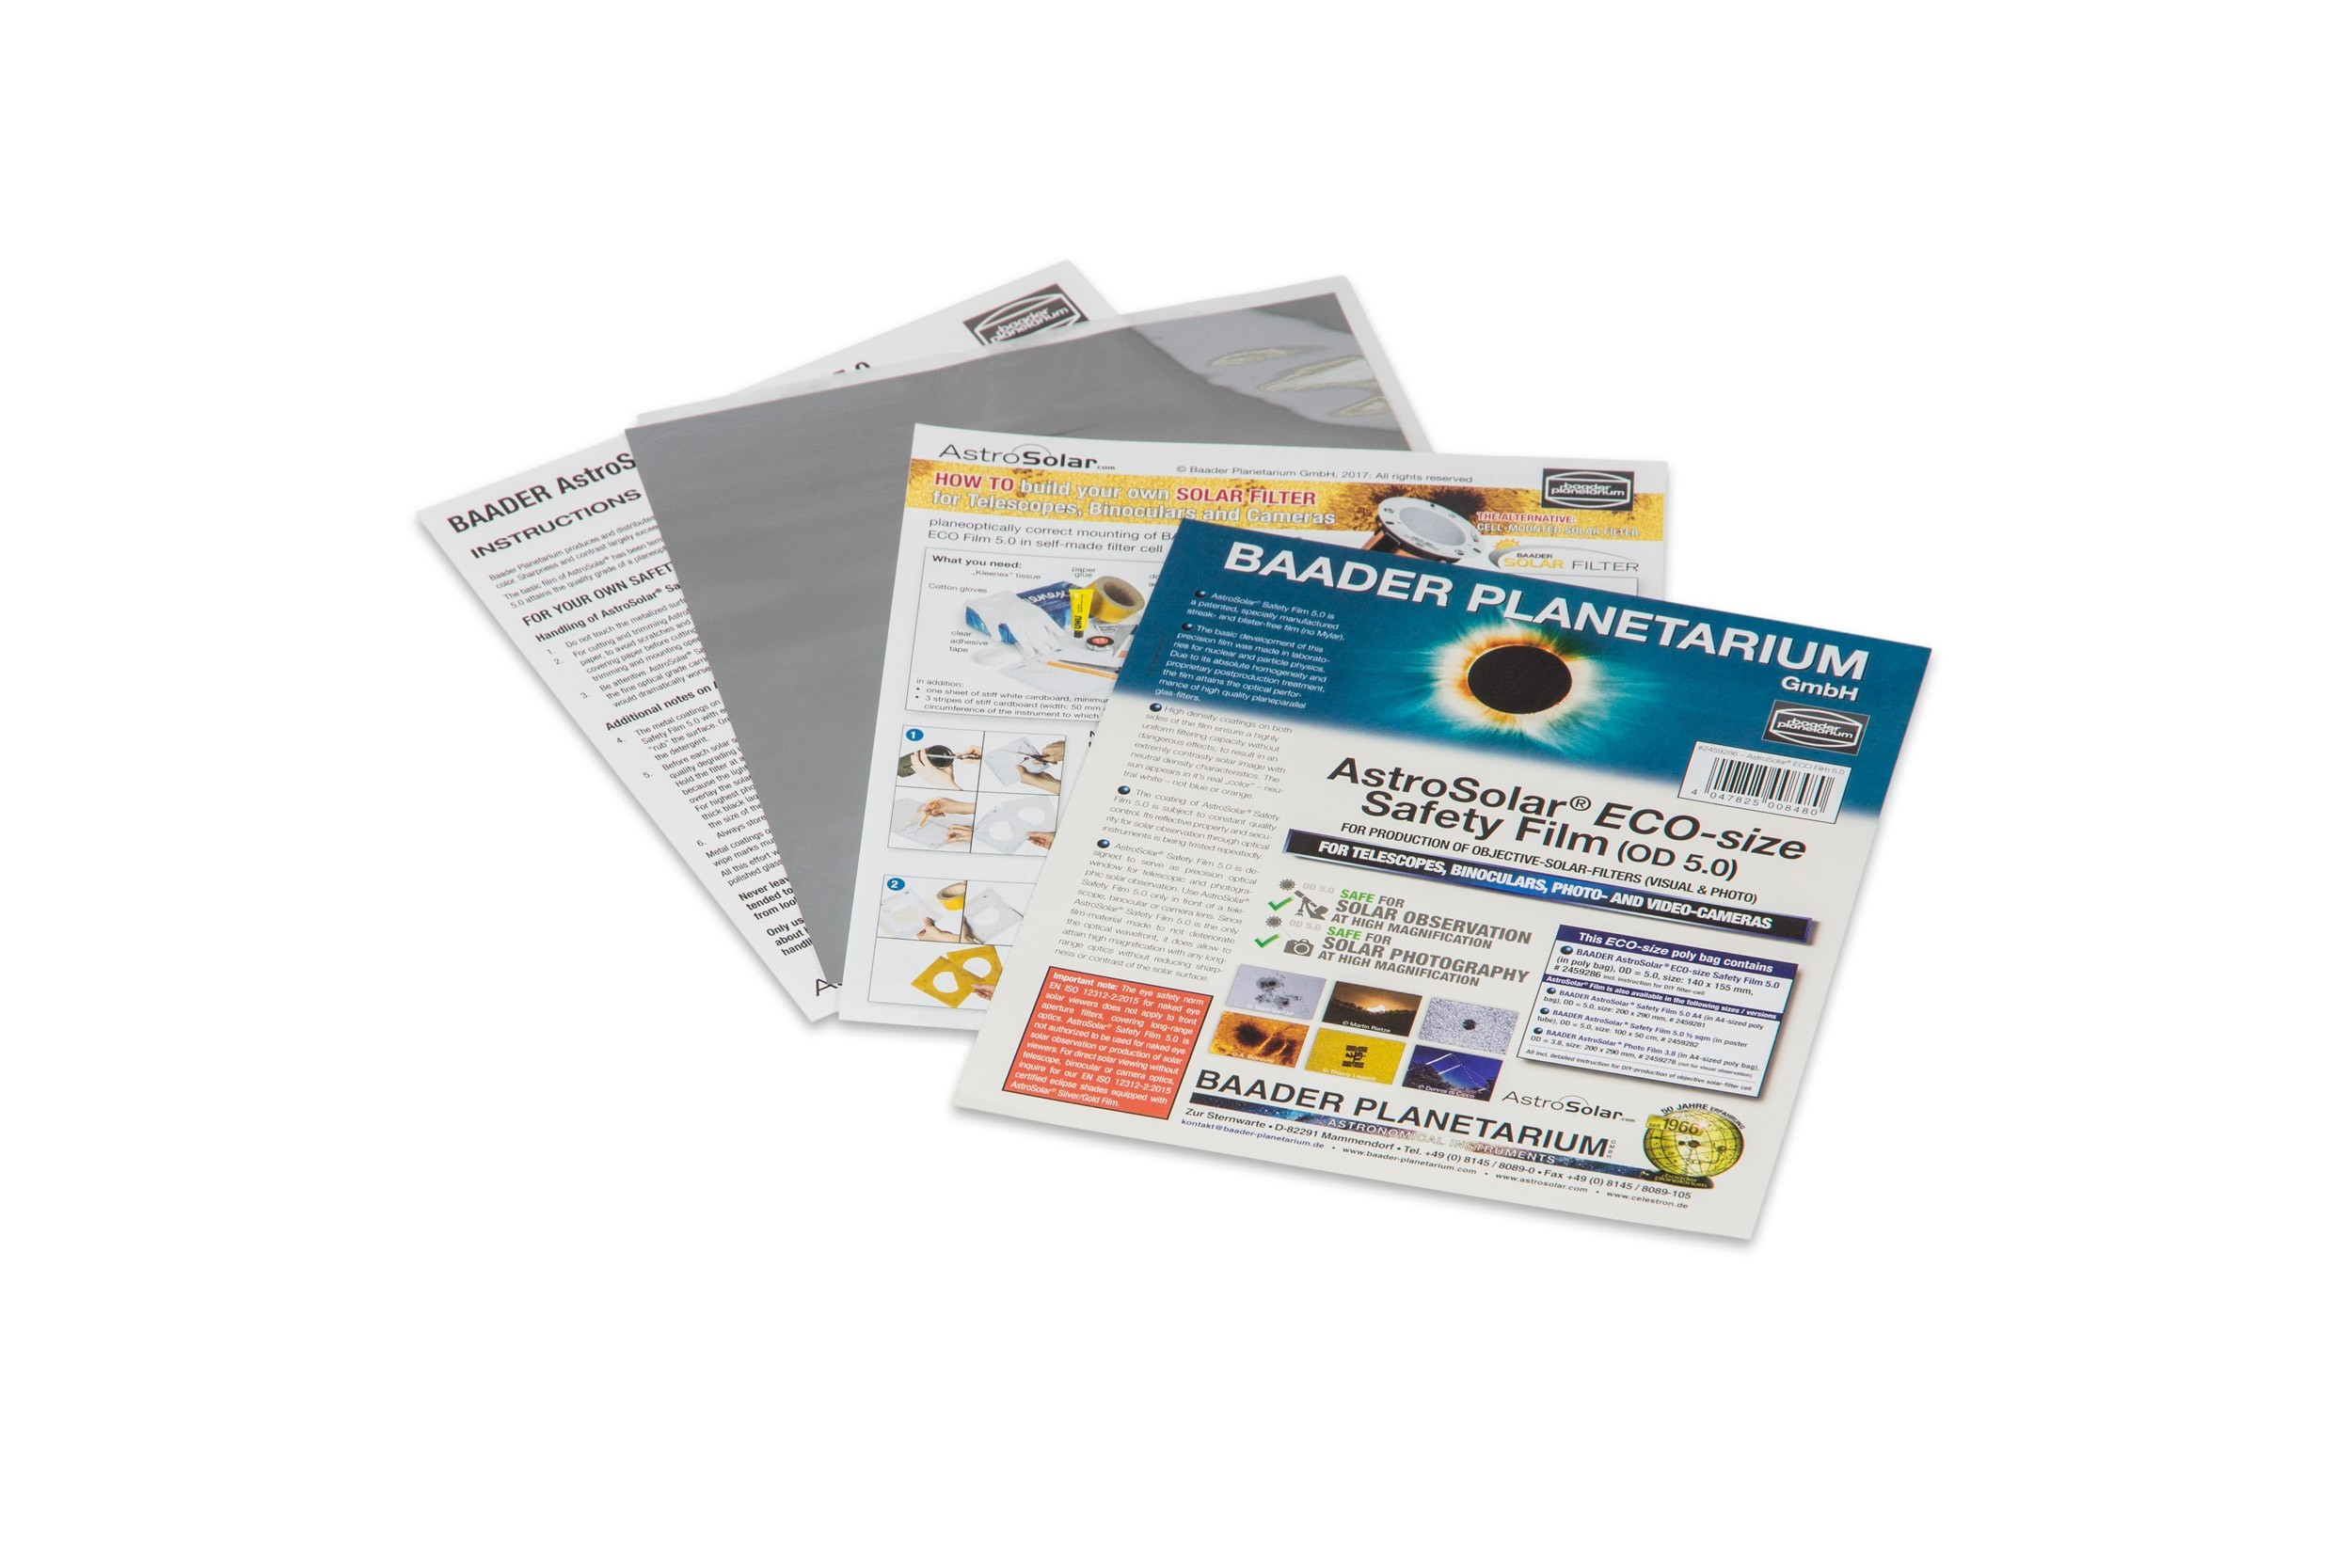 AstroSolar® ECO-size Safety Film 5.0 OD, size 140x155mm, incl. DIY instructions and template